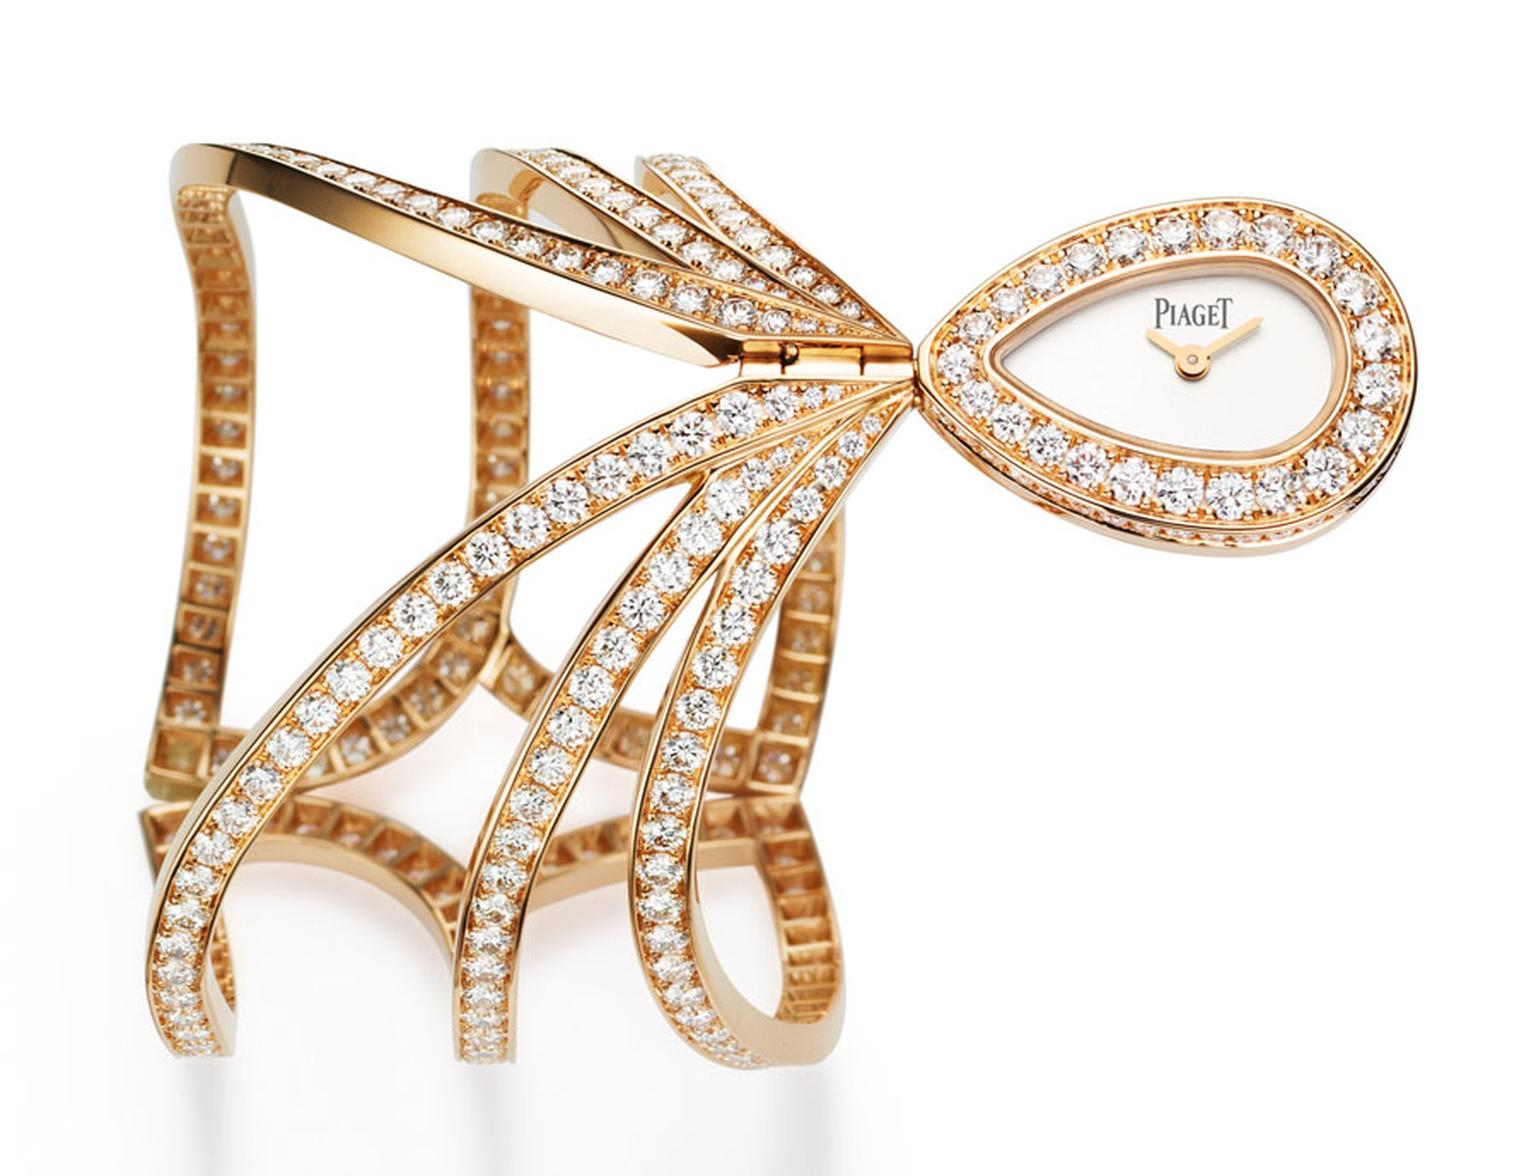 Piaget-Couture-SIHH-2.jpg